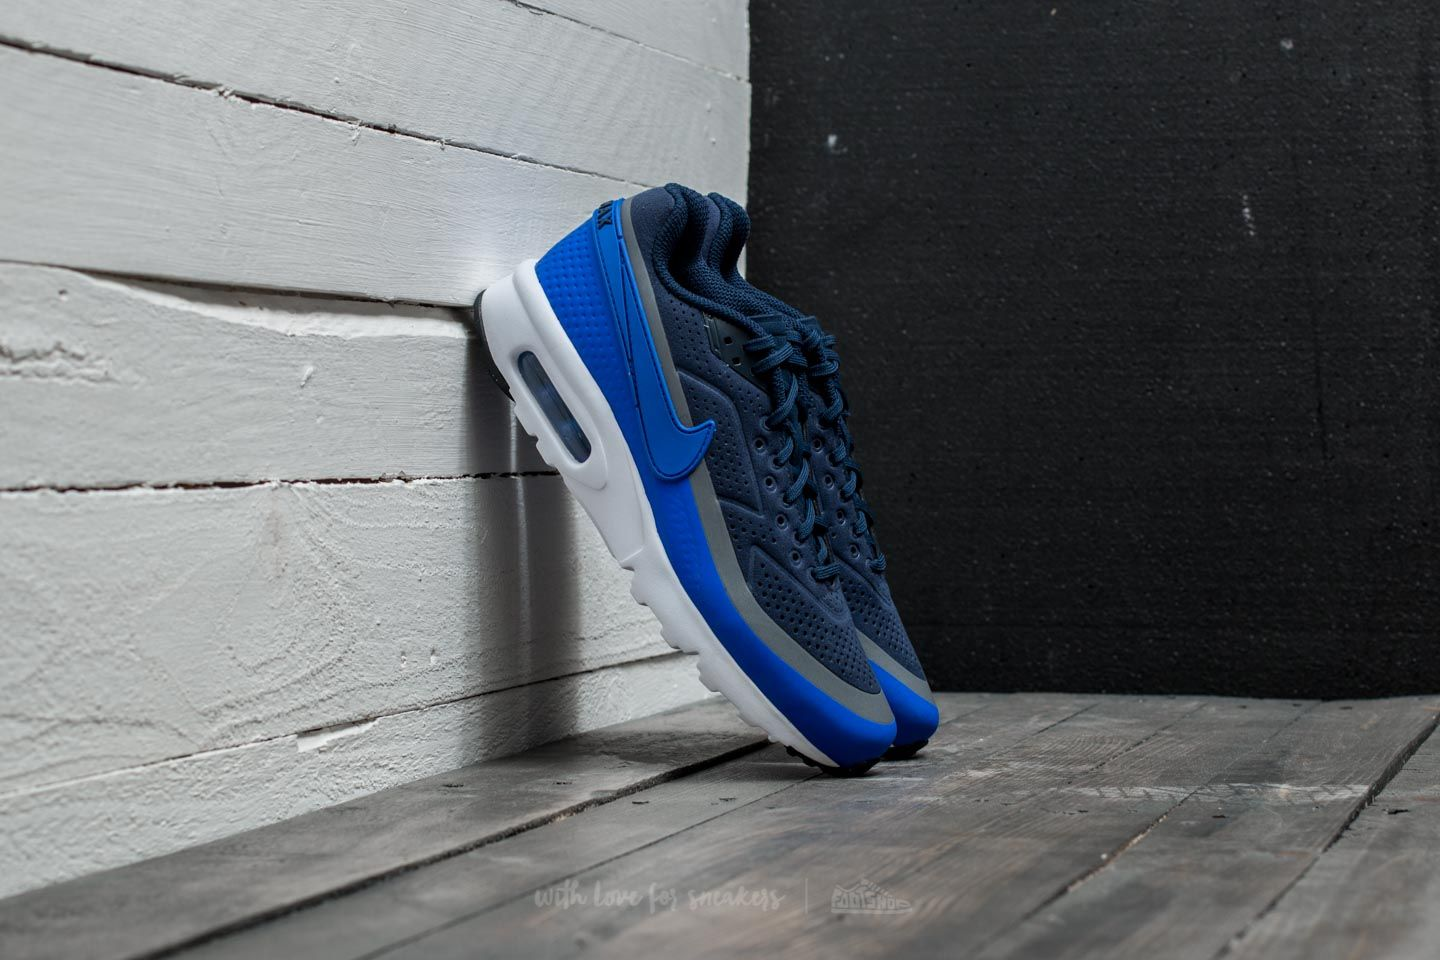 9f6641e9b1c4ef Nike Air Max BW Ultra Moire Midnight Navy  Racer Blue